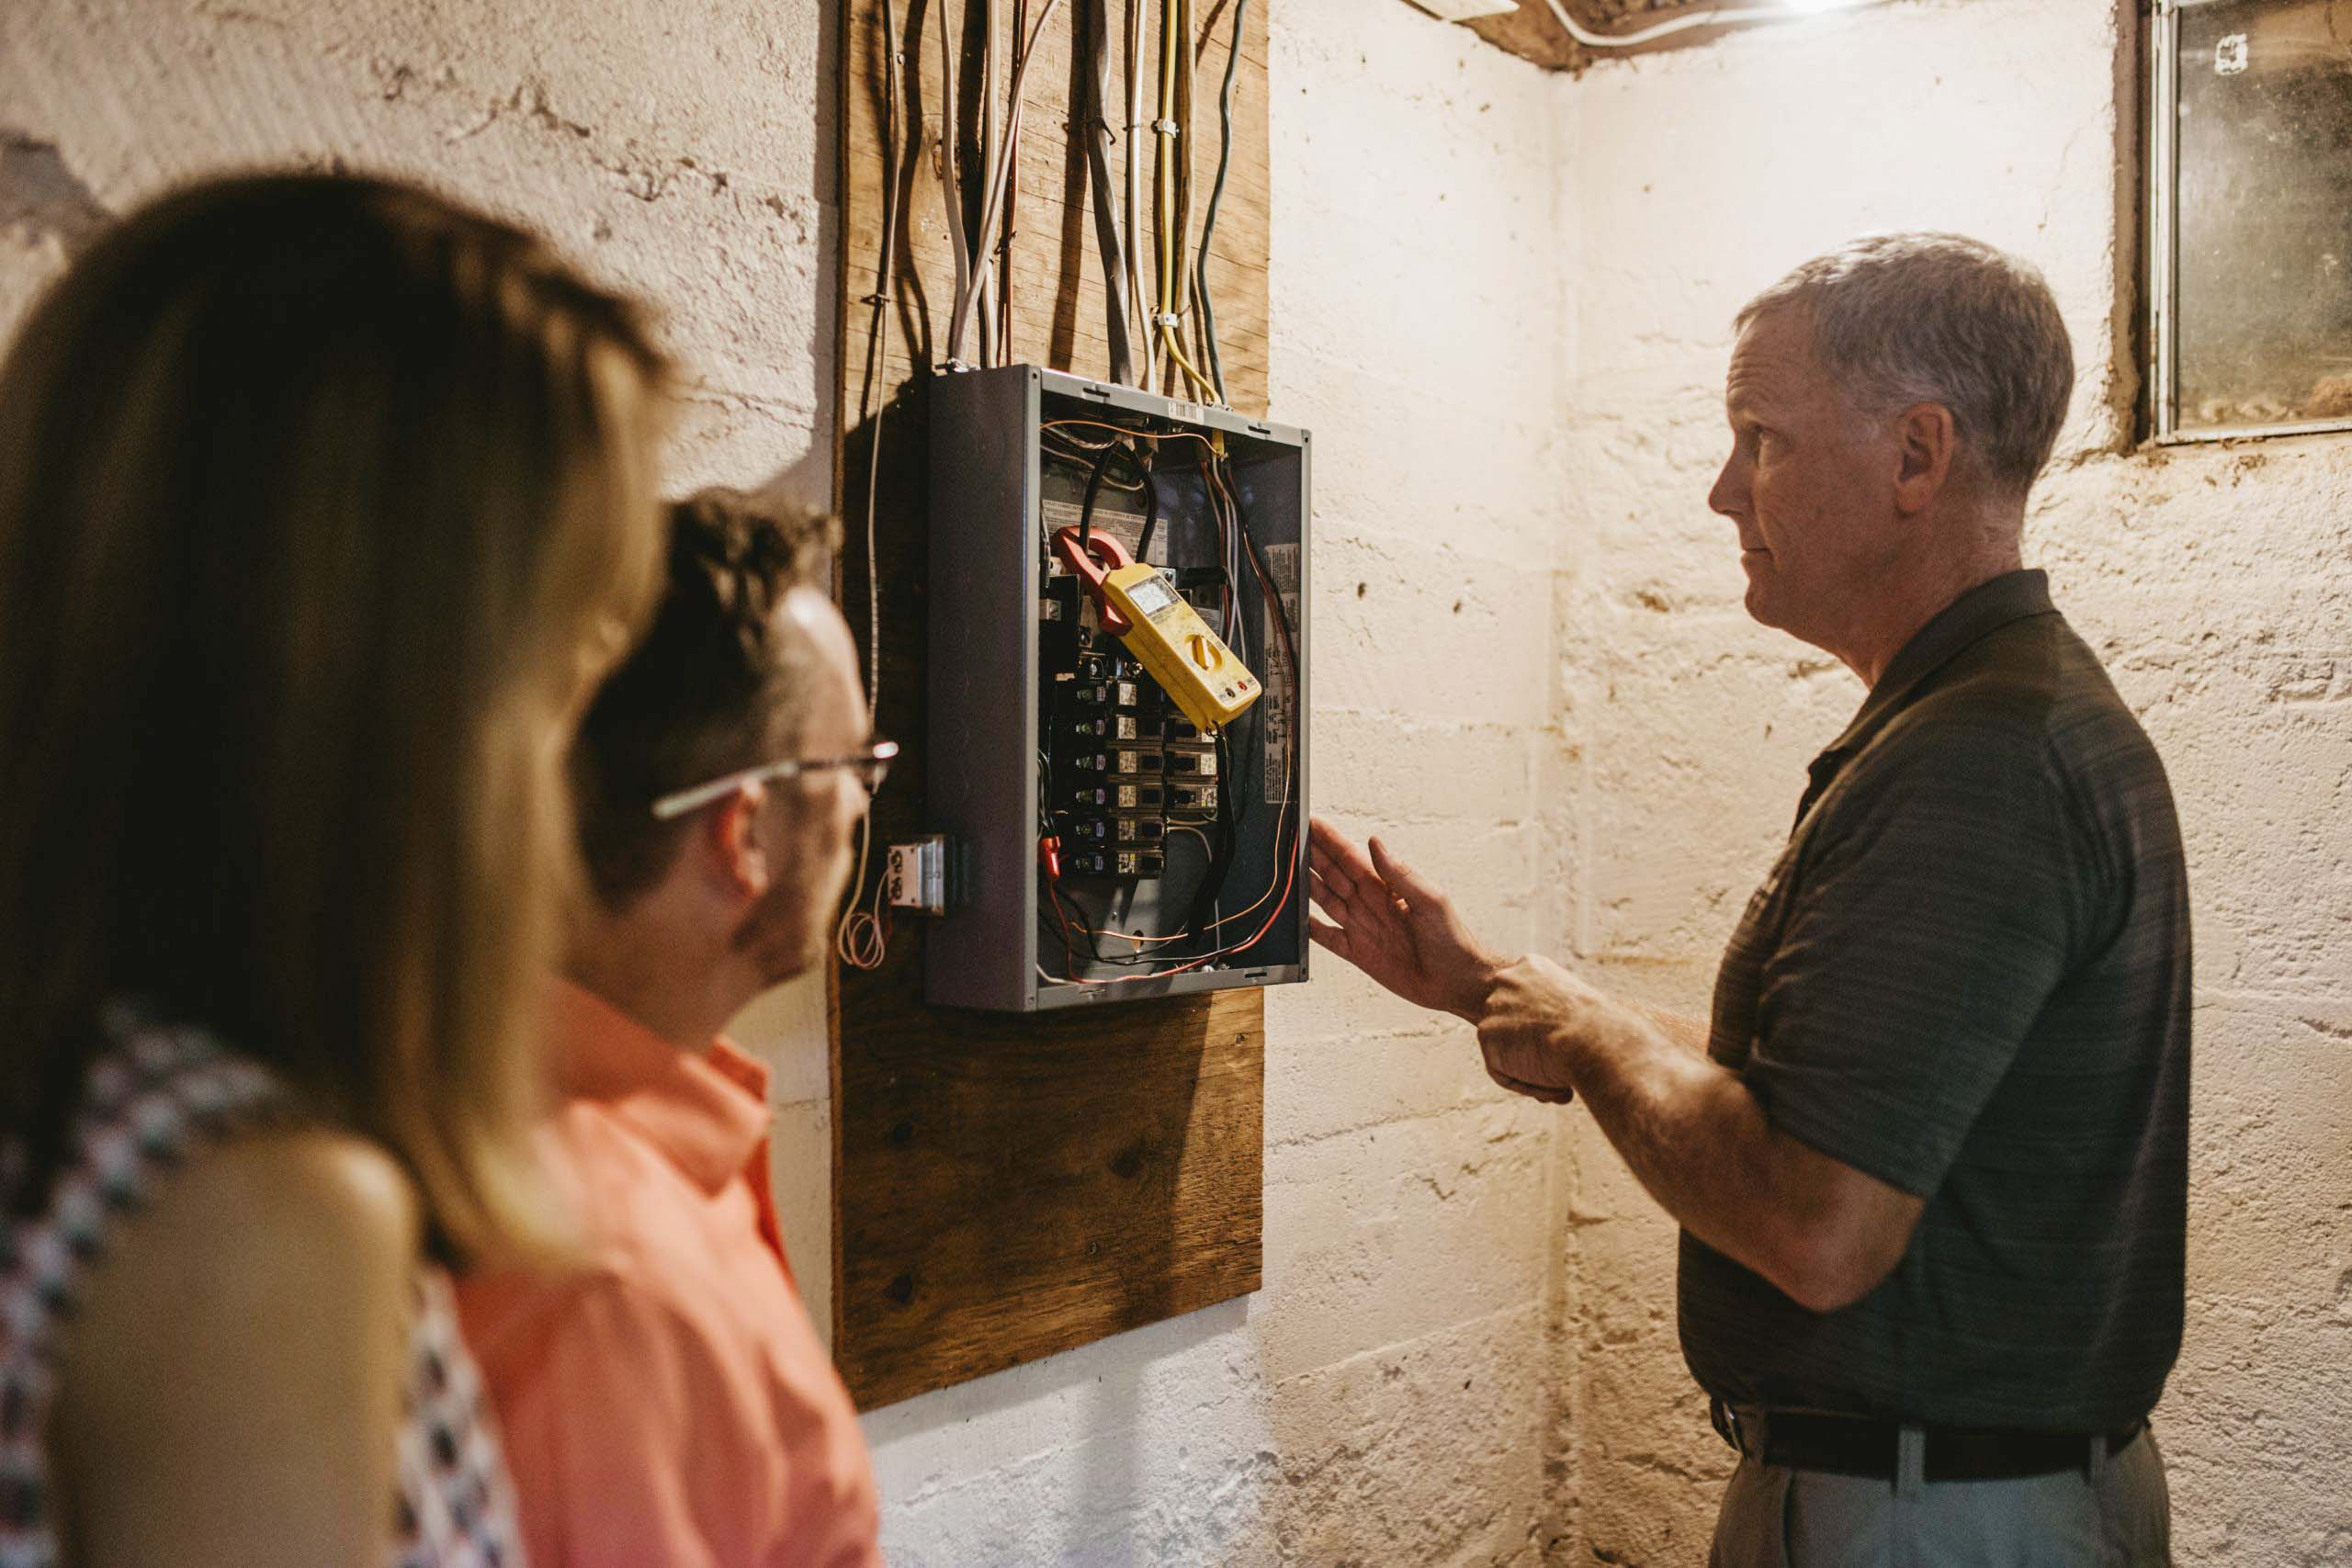 Rick Belliveau inspecting electric panel during home inspection